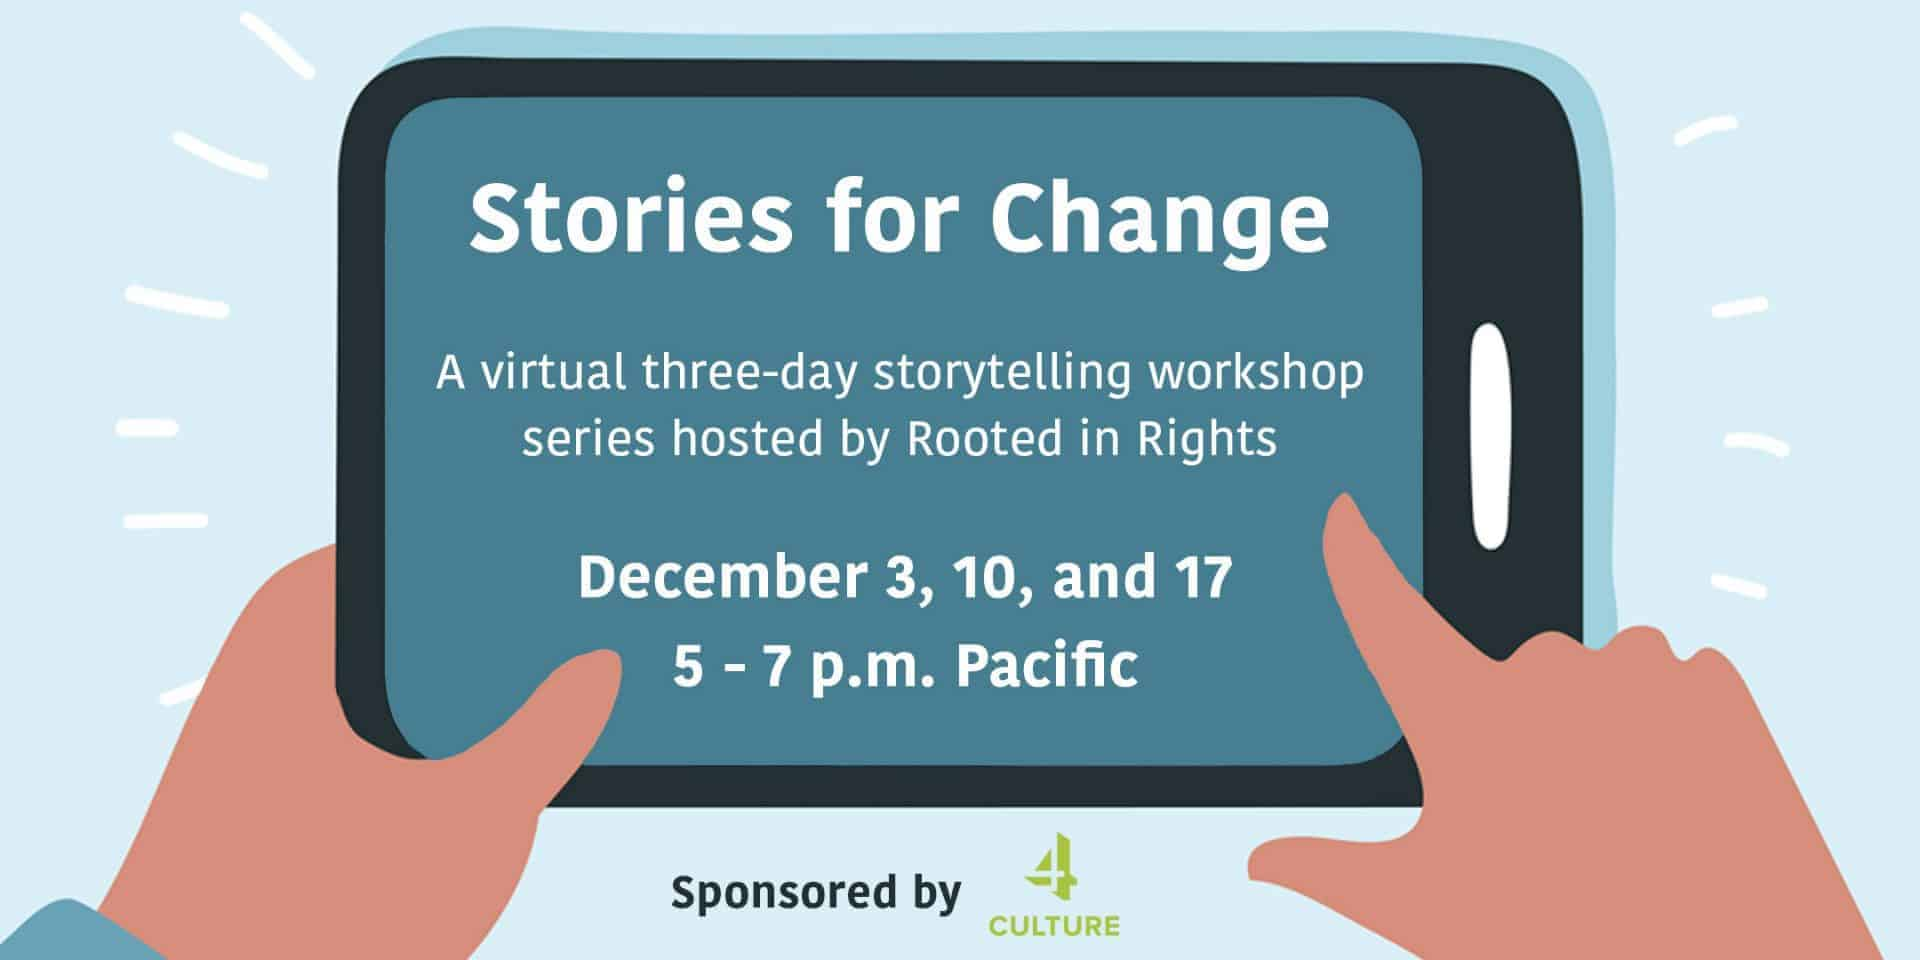 """An illustration of two hands holding a mobile device. On the screen, white text reads, """"Stories for Change. A virtual three-day storytelling workshop series hosted by Rooted in Rights. December 3, 10, and 17. 5 - 7 p.m. Pacific."""" White beaming lines surround the mobile device to express excitement. At the bottom of the illustration, black text reads, """"Sponsored by"""" and a lime green logo that says 4 Culture is next to it."""